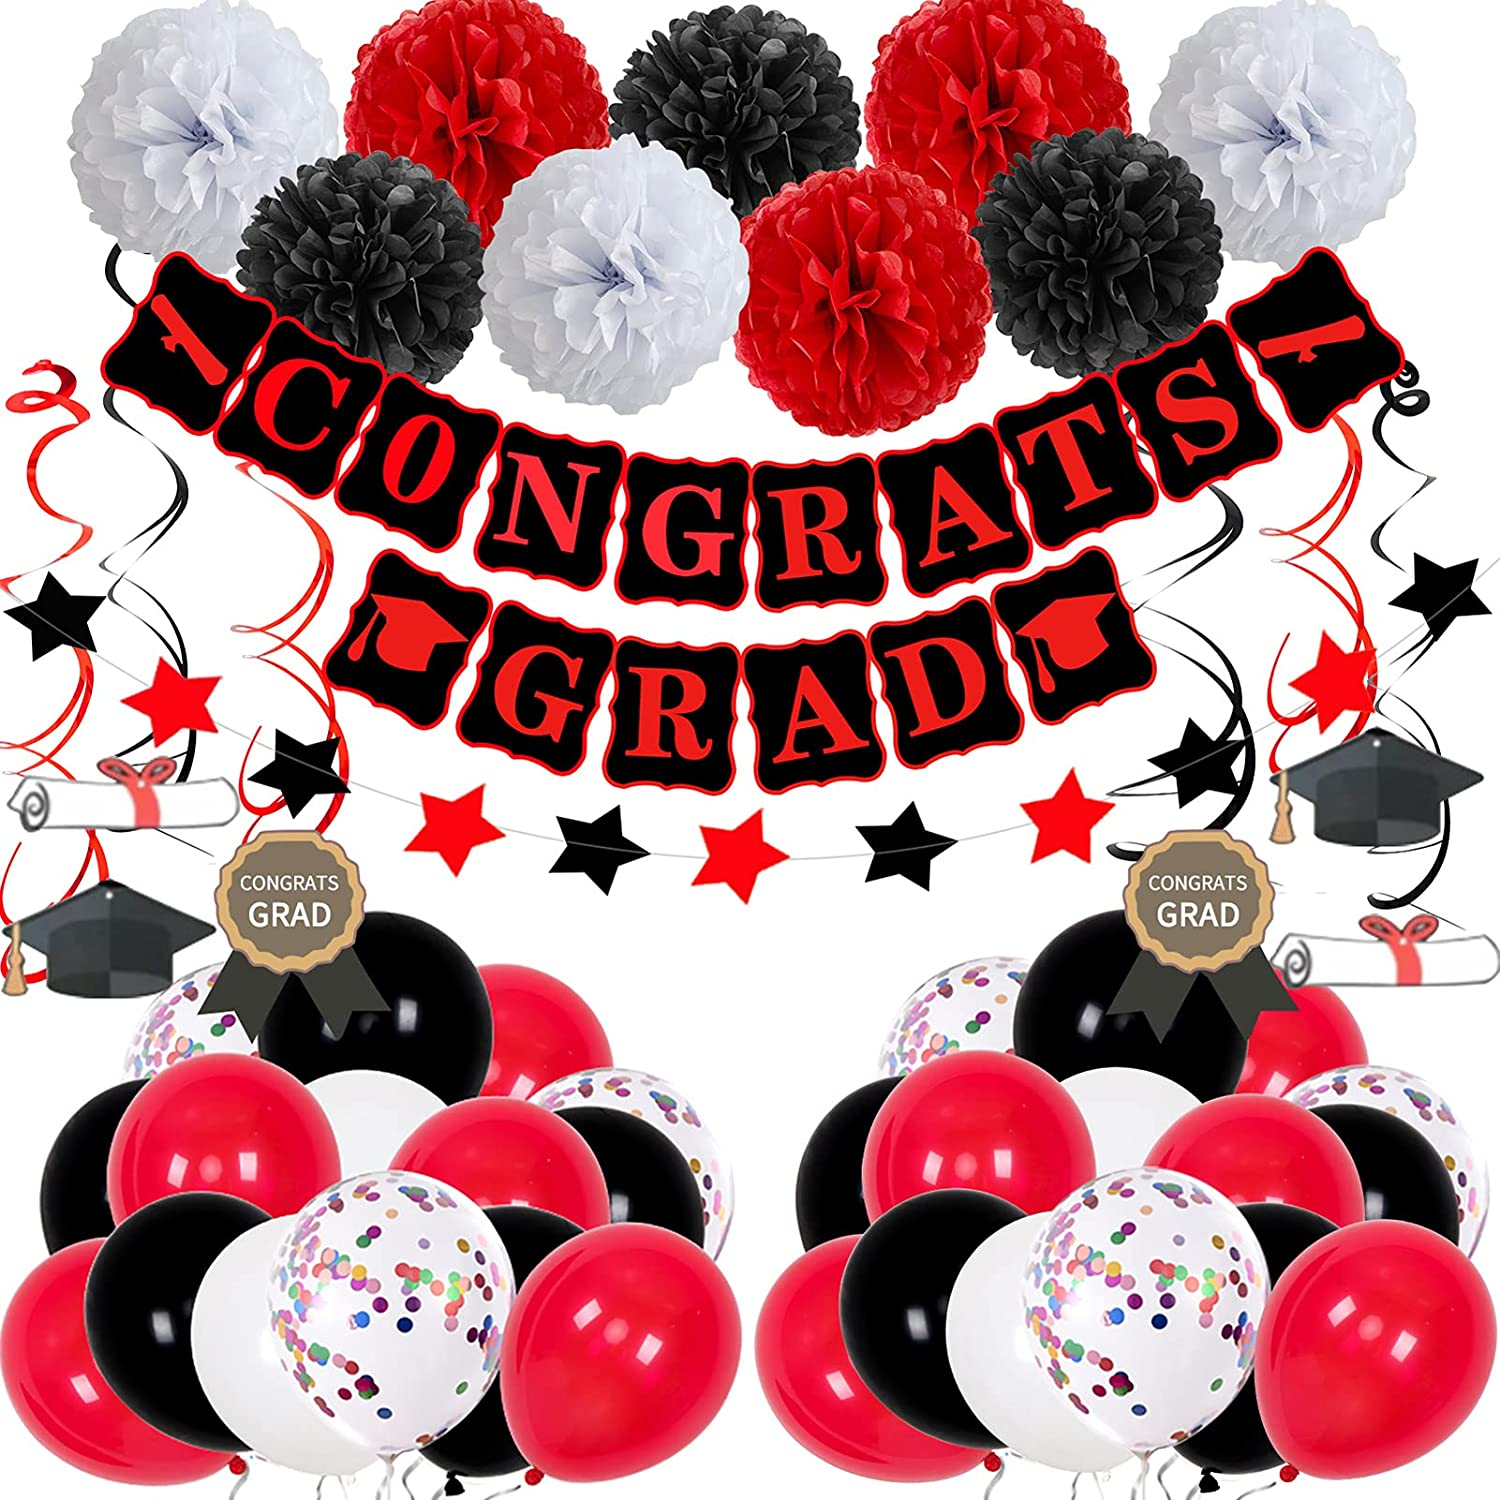 Graduation Decorations, Graduation Party Decorations 2021 Red and Black Congrats Grad Banner Paper Pompoms Hanging Swirls Balloons Kit Photo Backdrop for High School College Graduation Decor Supplies